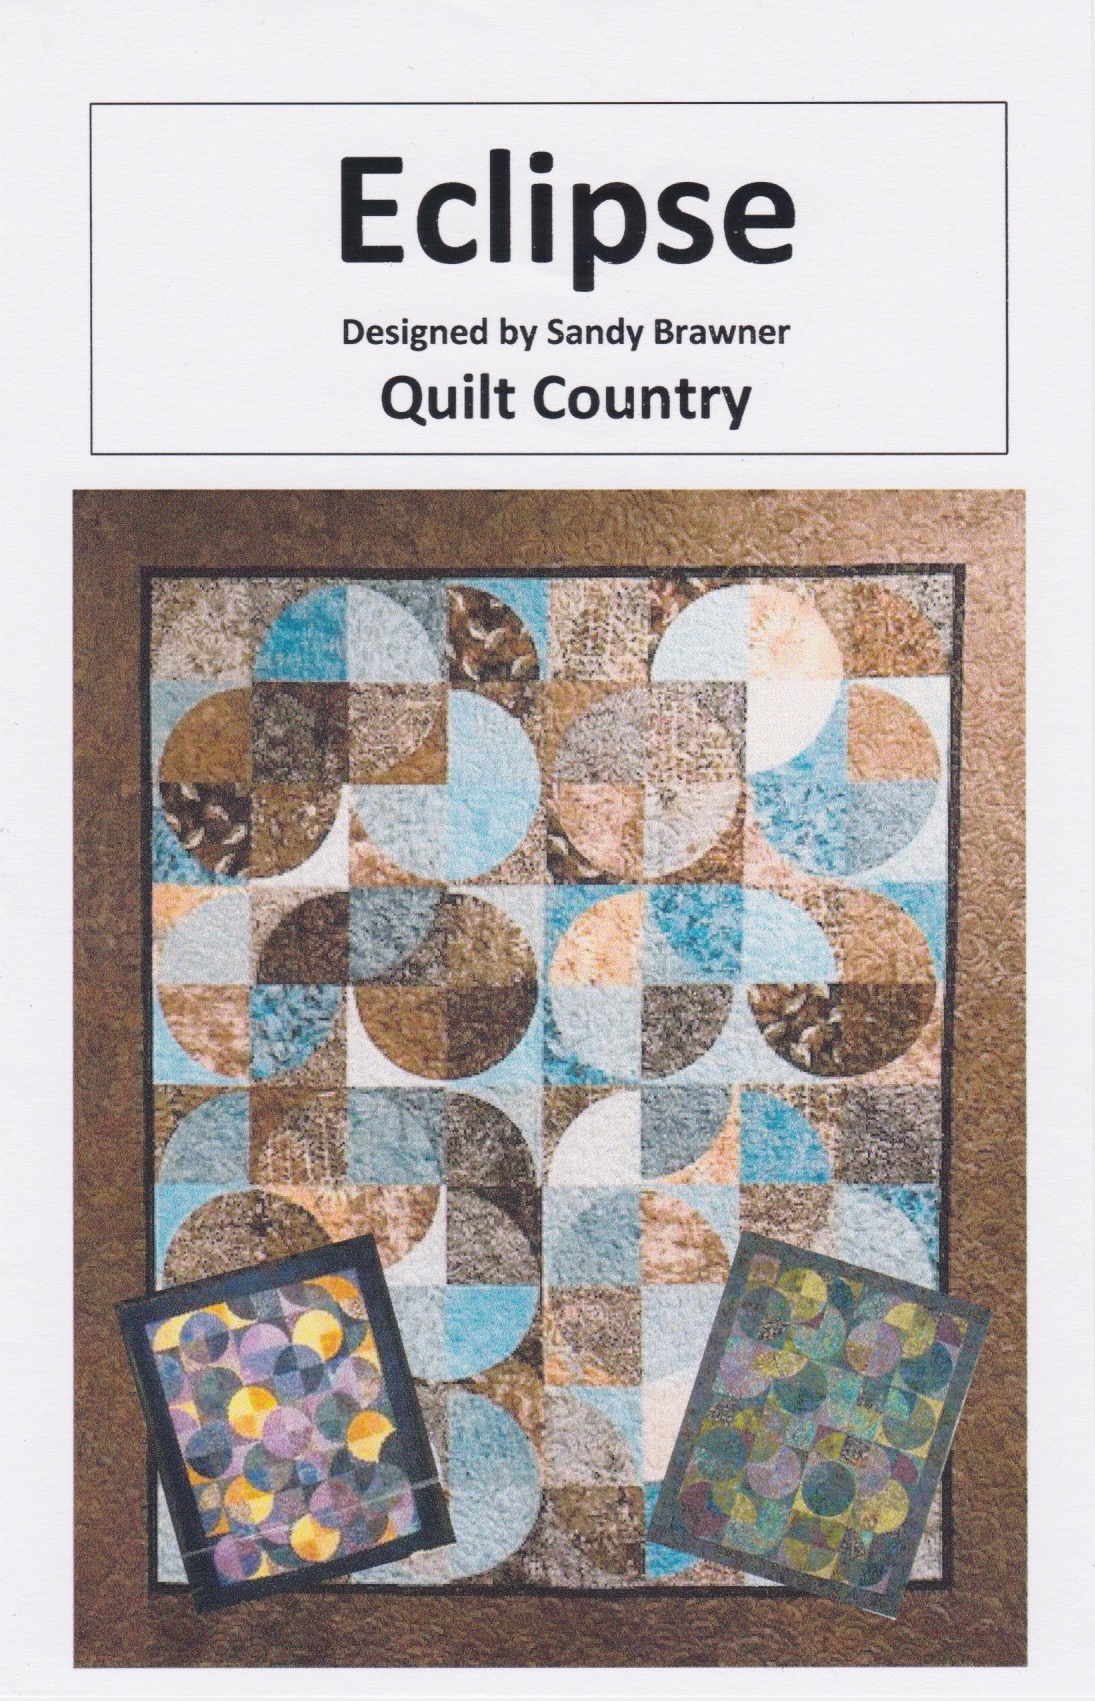 Eclipse Quilt Pattern Quilt Country Diy Quilting Great With Batik